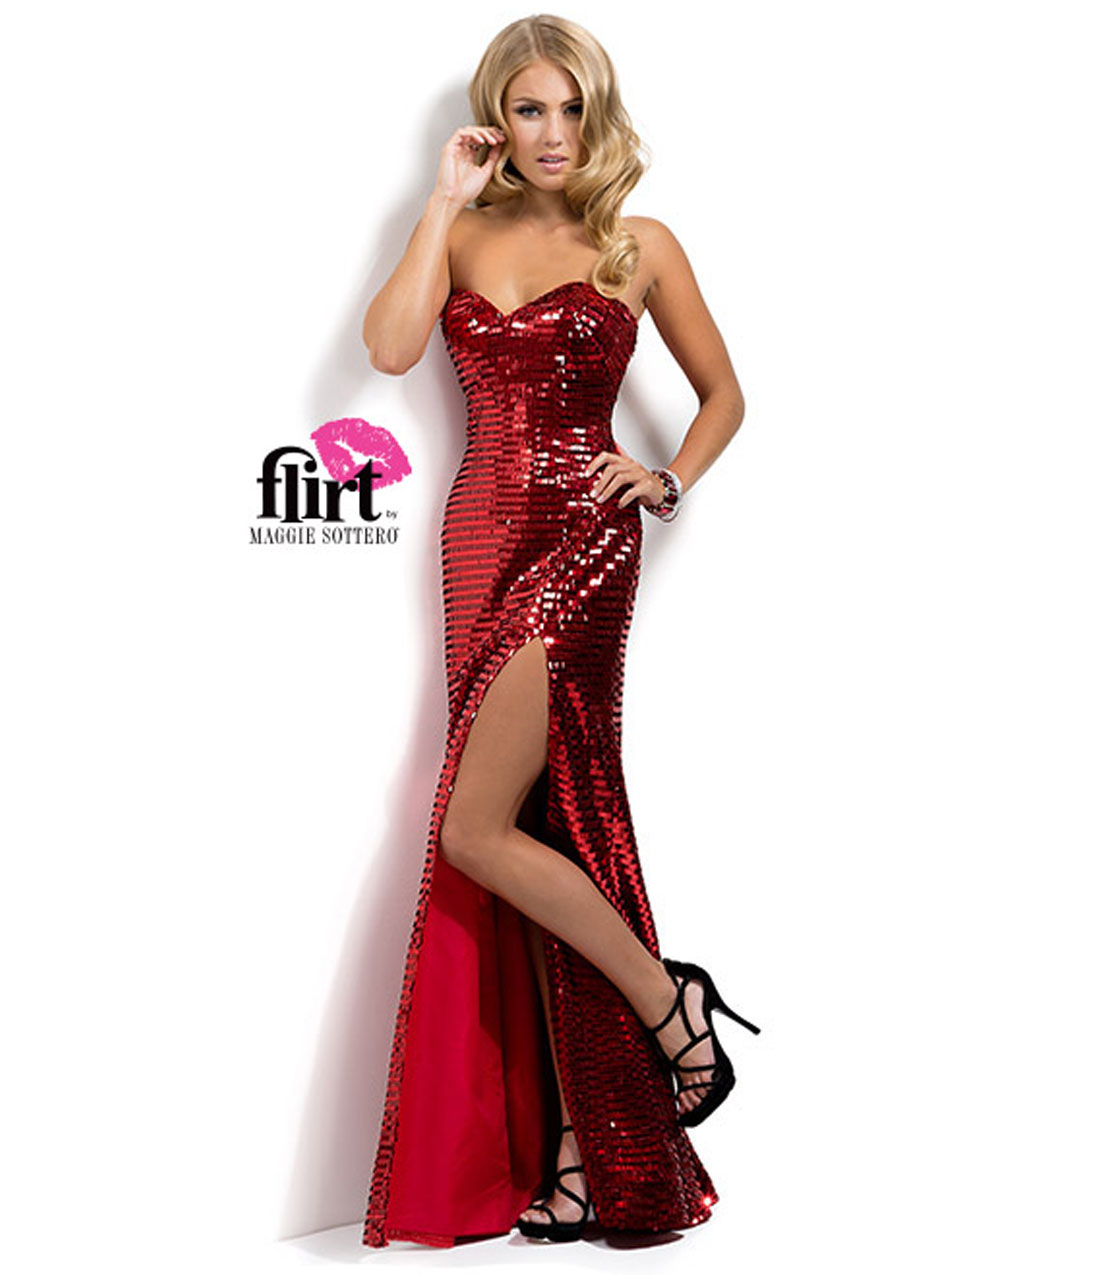 0e12e3e1489 Flirt by Maggie Sottero 2014 Prom Dresses - Ruby Red Sequin Sheath Prom Gown  - Unique Vintage - Prom ...